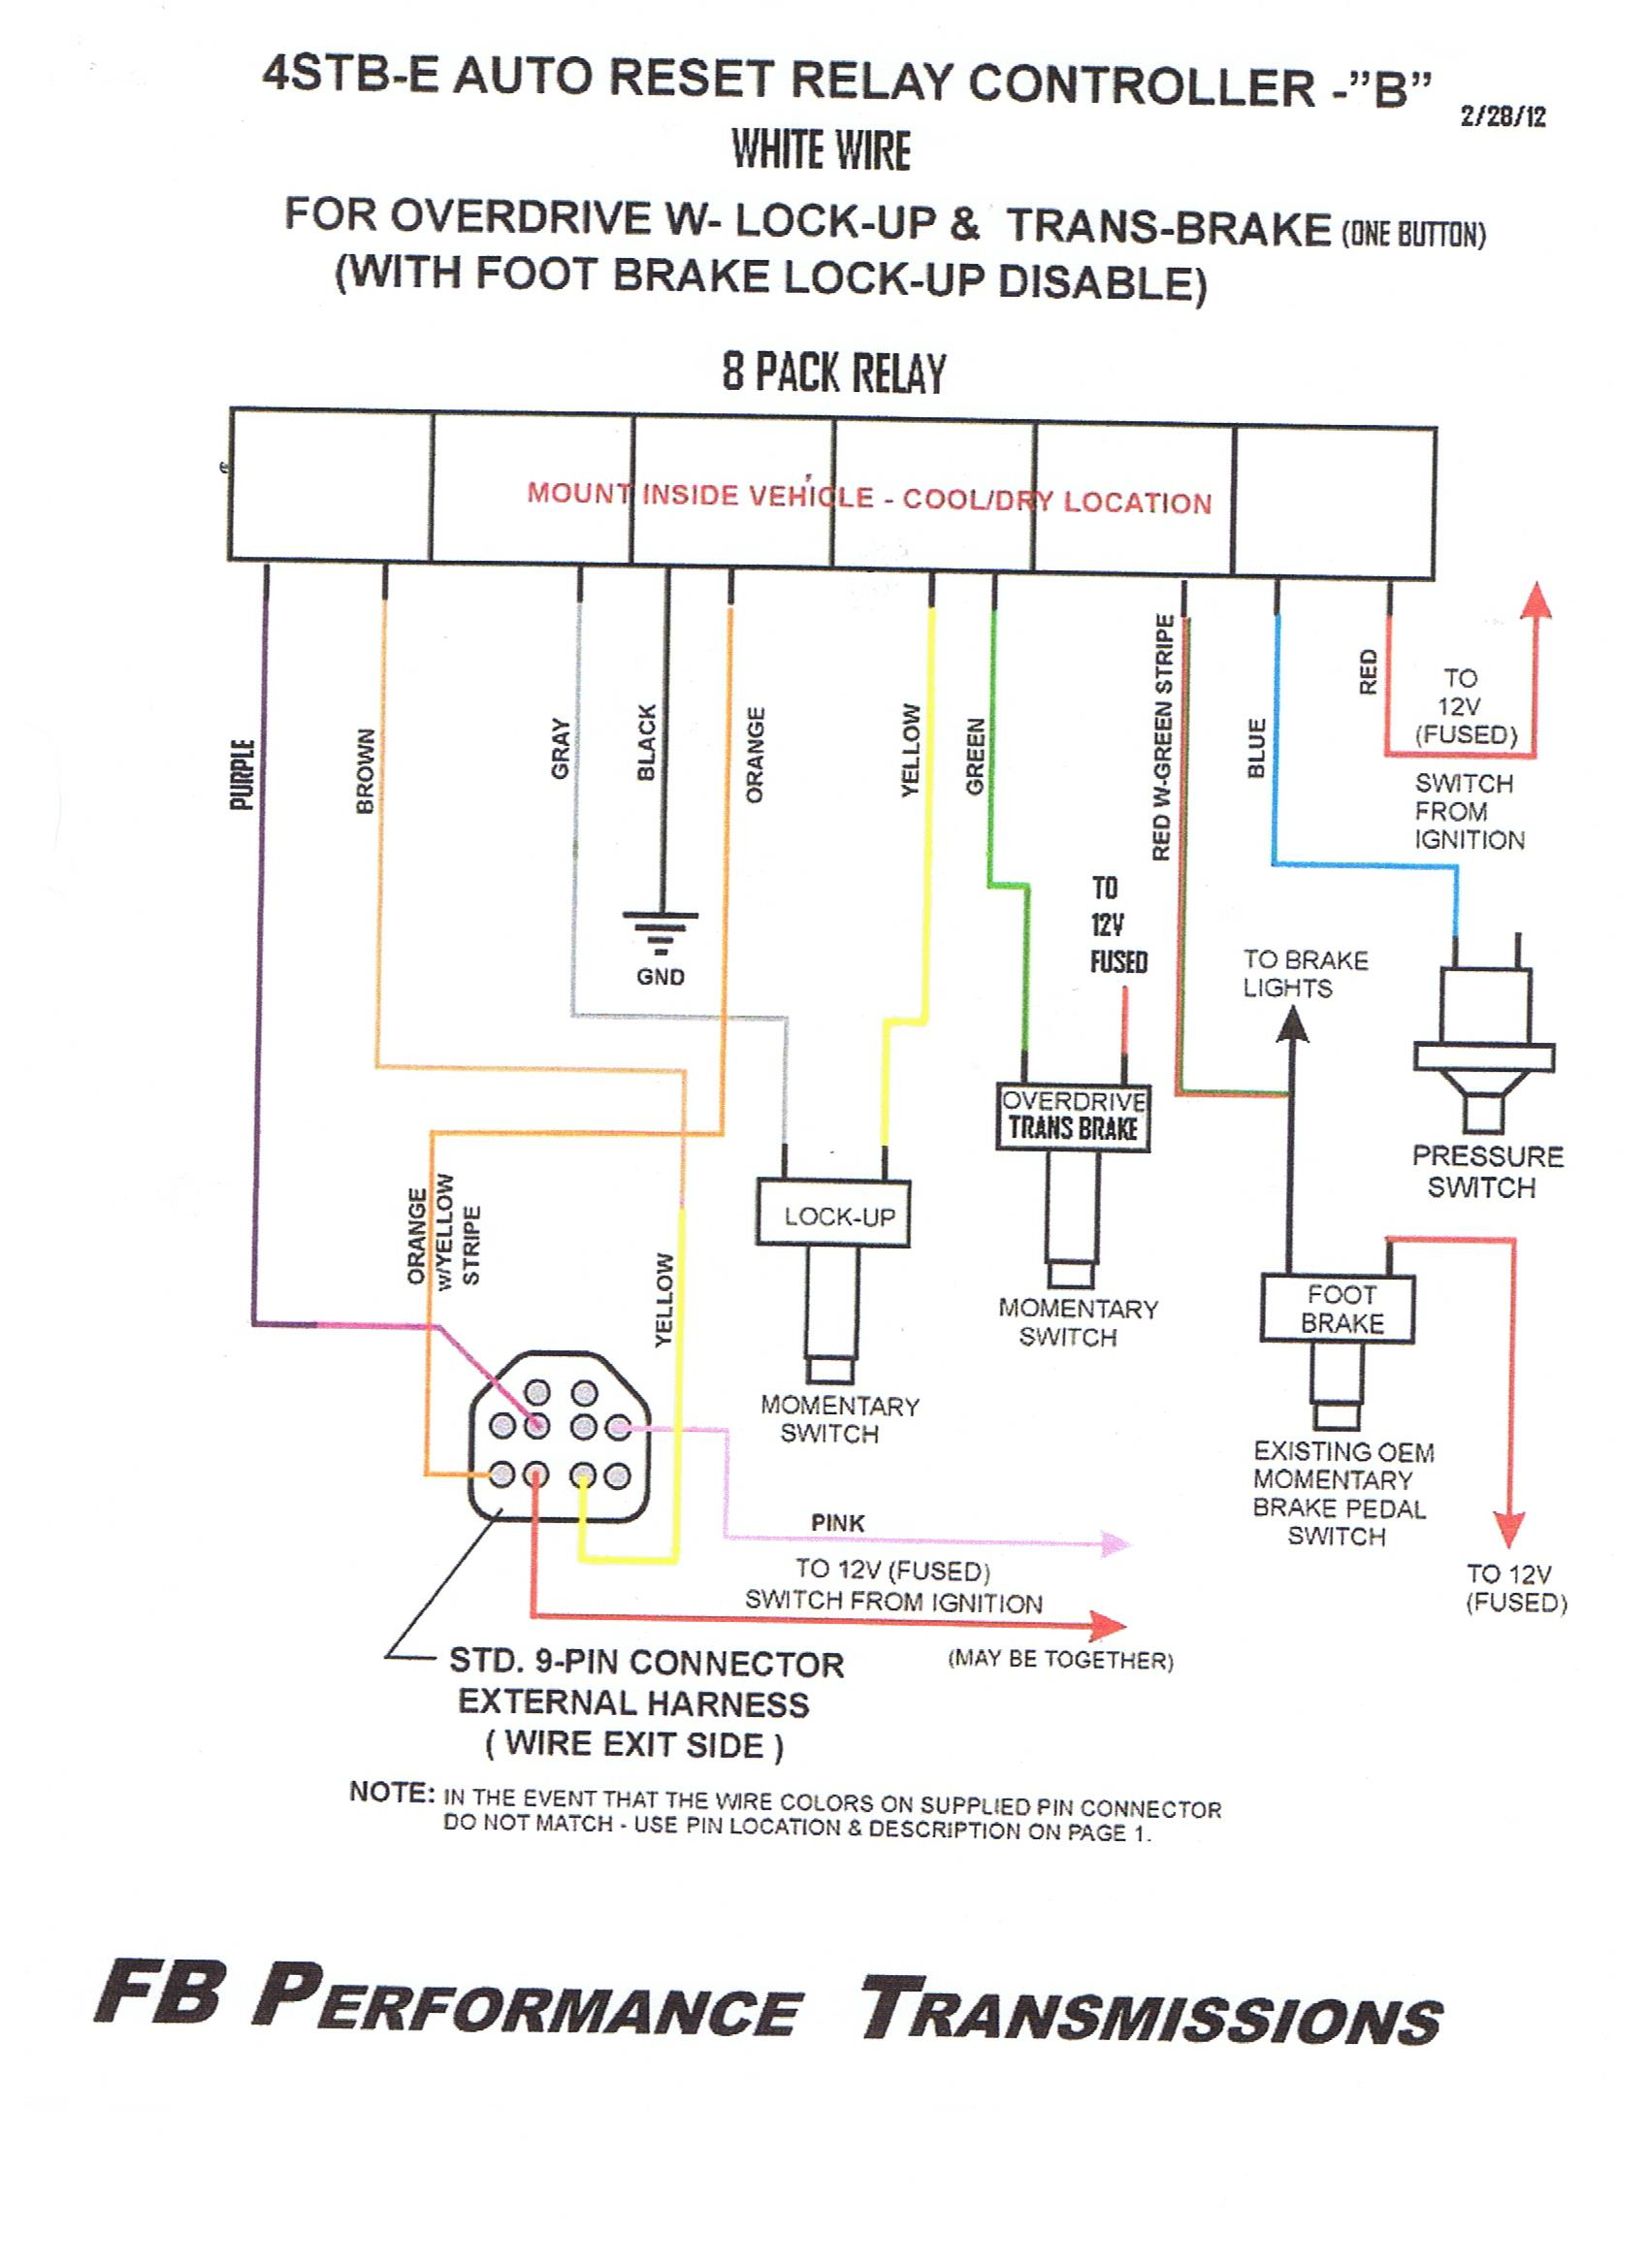 WRG-8282] A4ld Wiring Diagram on